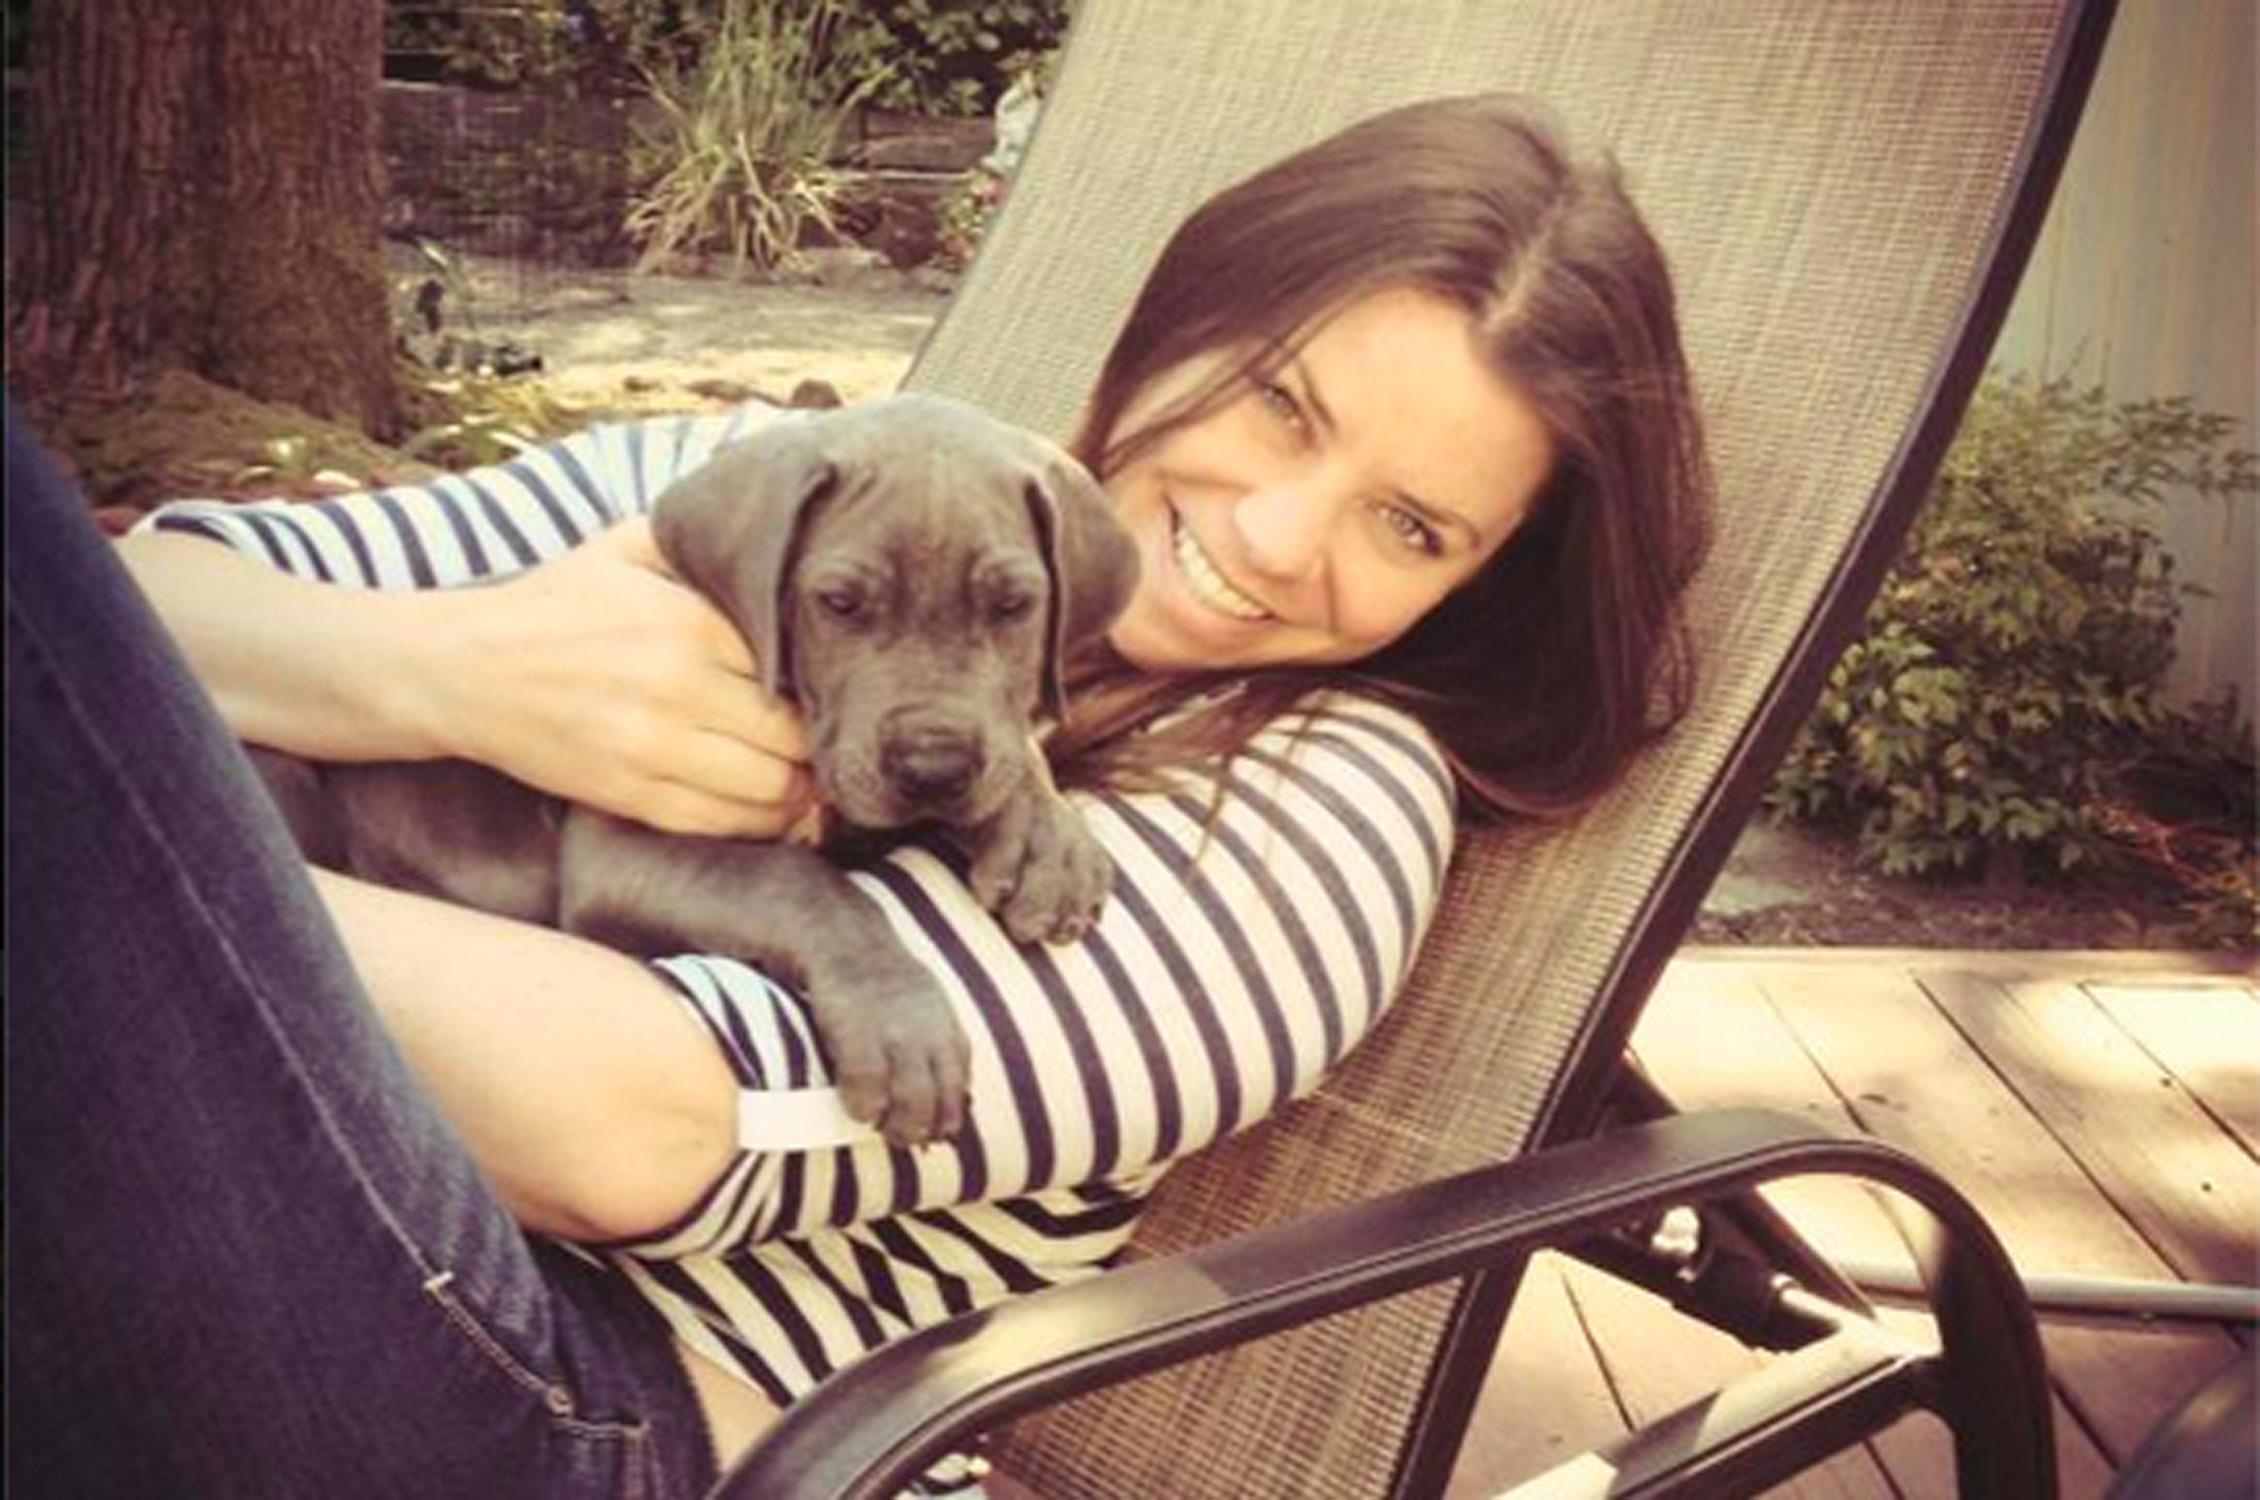 Death With Dignity Advocate Brittany Maynard Dies in Oregon - NBC News: www.nbcnews.com/health/health-news/death-dignity-advocate-brittany...